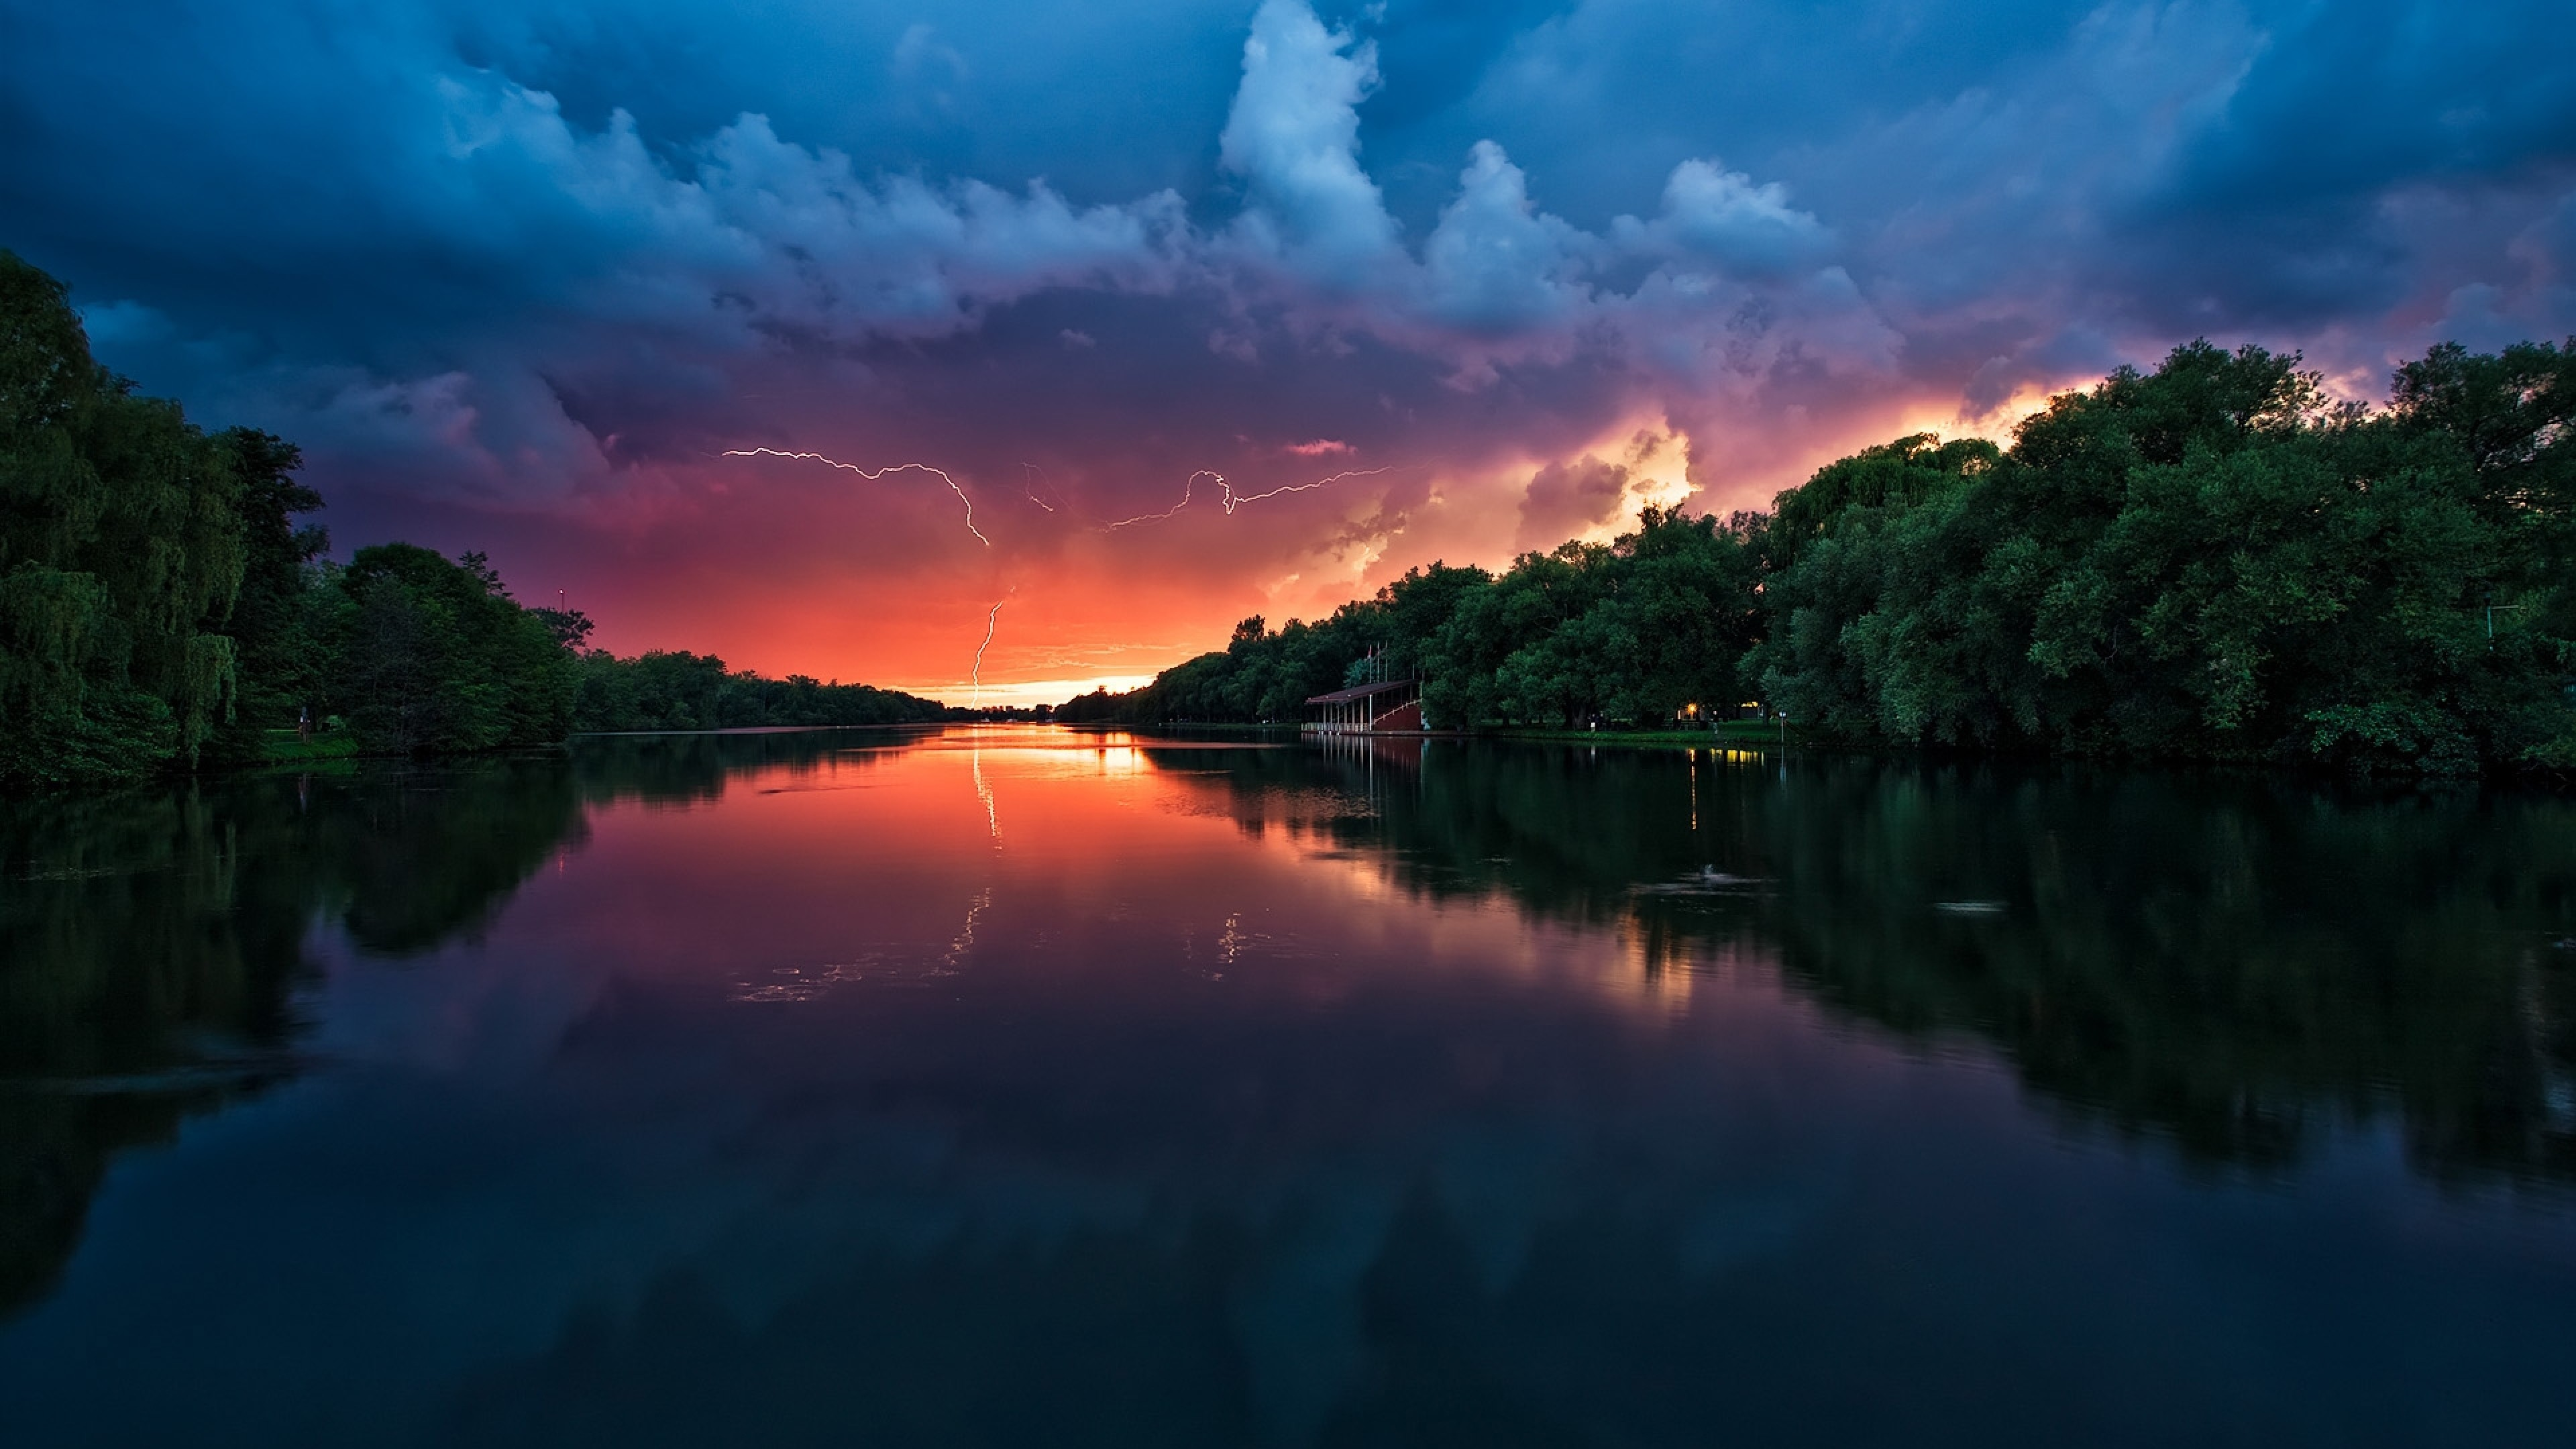 Preview wallpaper clouds, thunder-storm, river, reflection, lightning,  trees 3840×2160